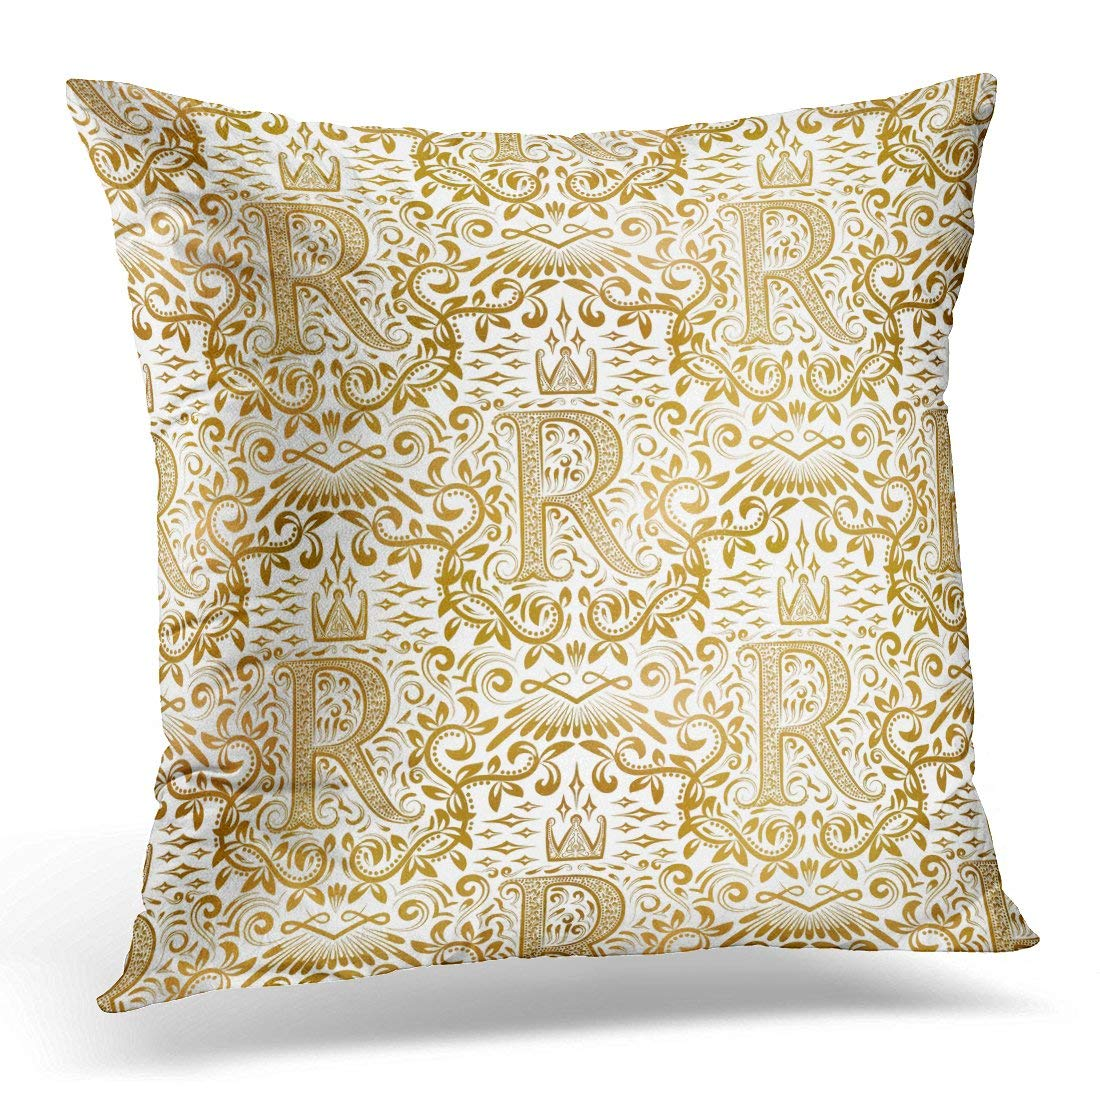 USART Repeatable Golden White Vintage Gold Royal Classic Baroque Antique Abstract Pillow Case Pillow Cover 20x20 inch